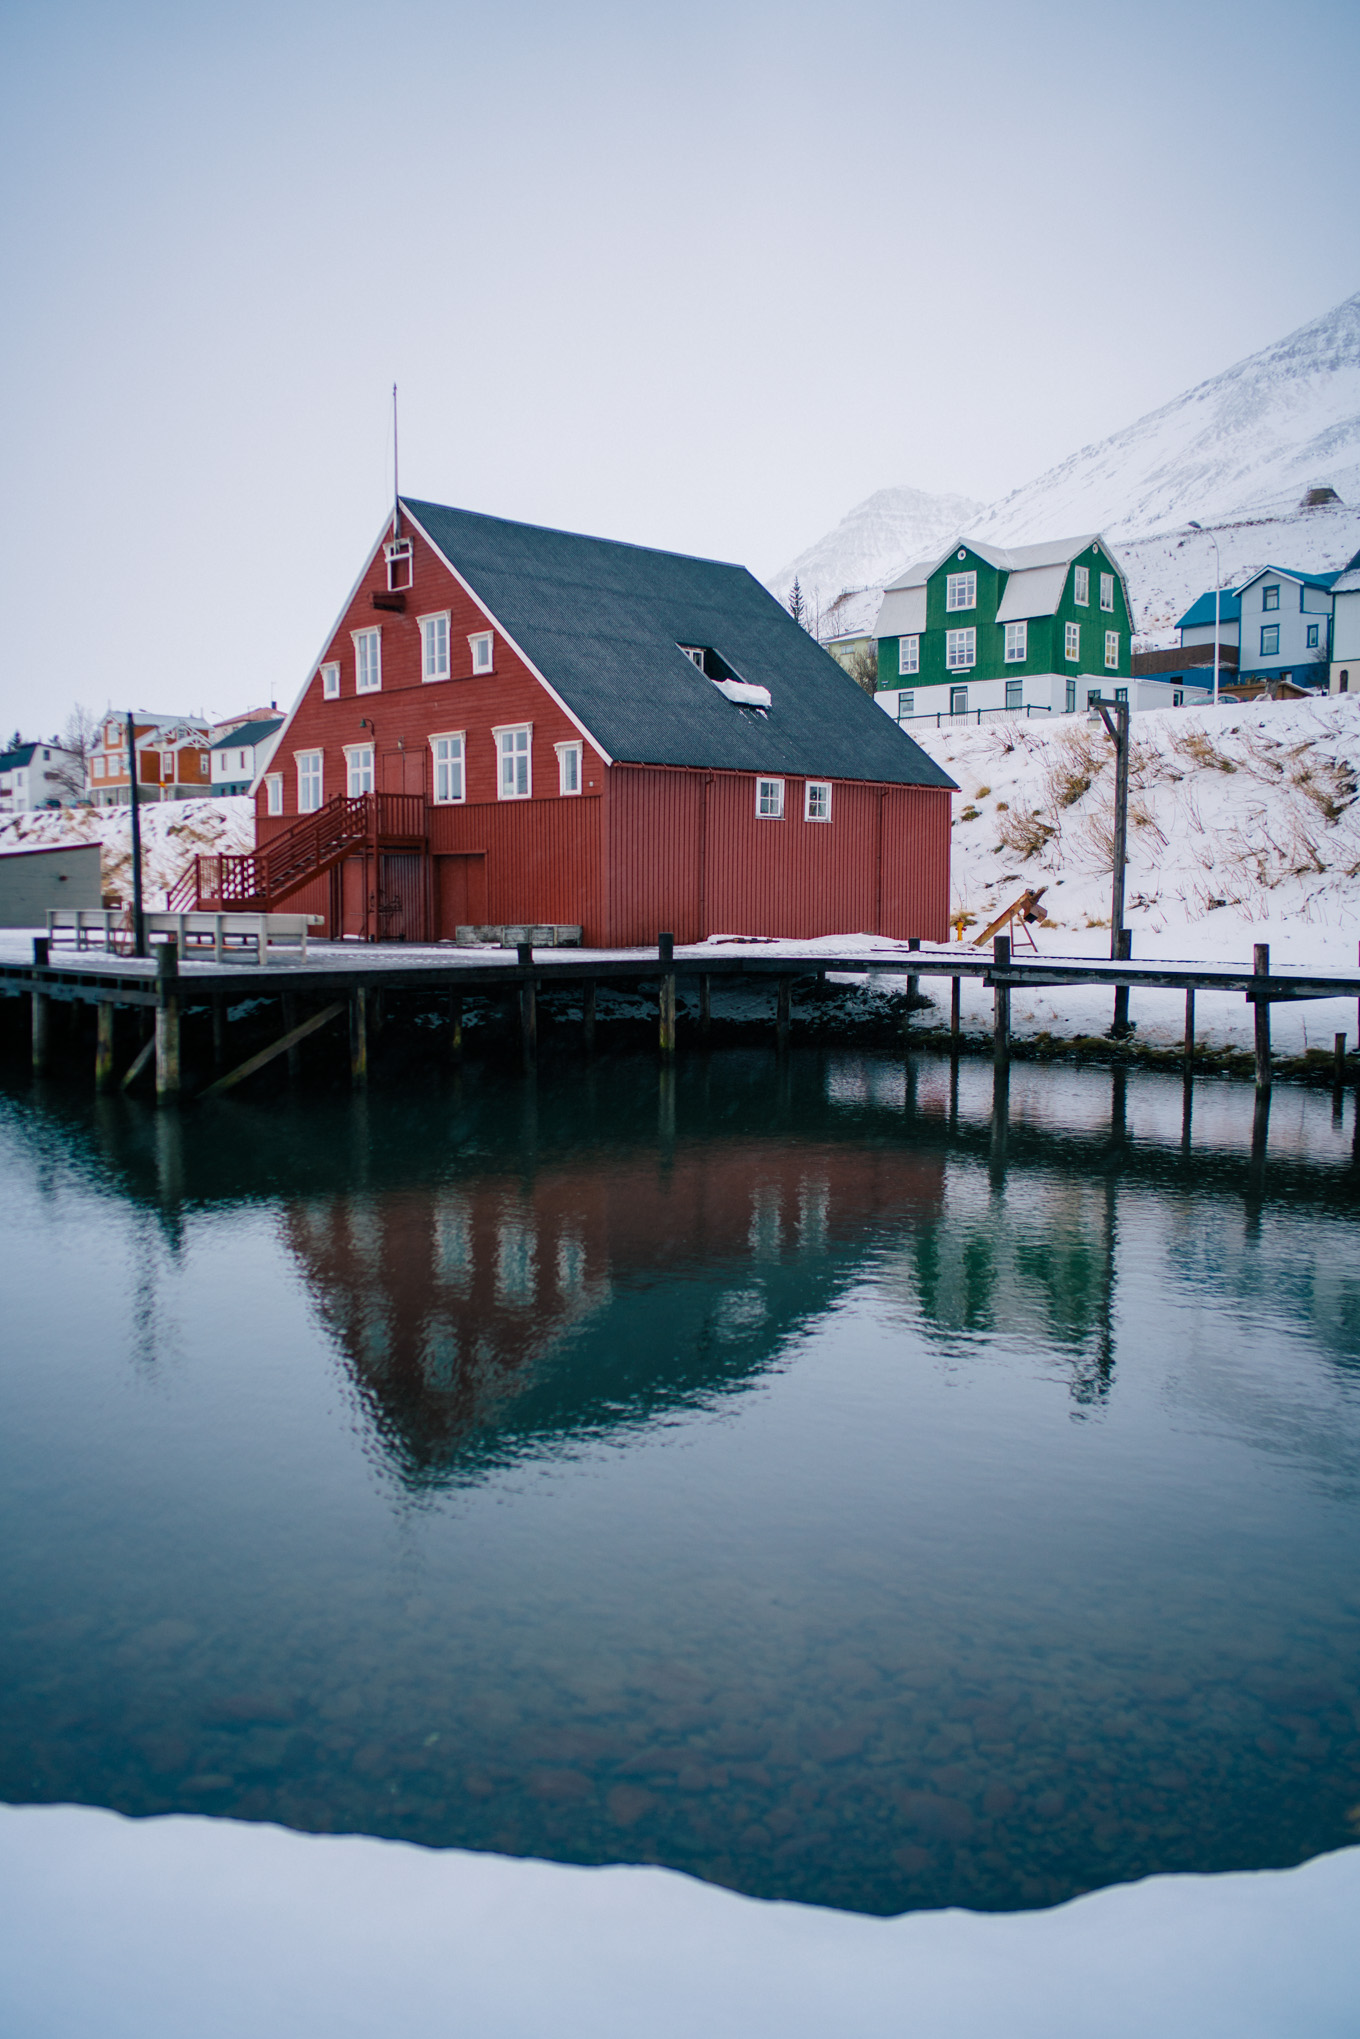 gmg-iceland-itinerary-winter-00905